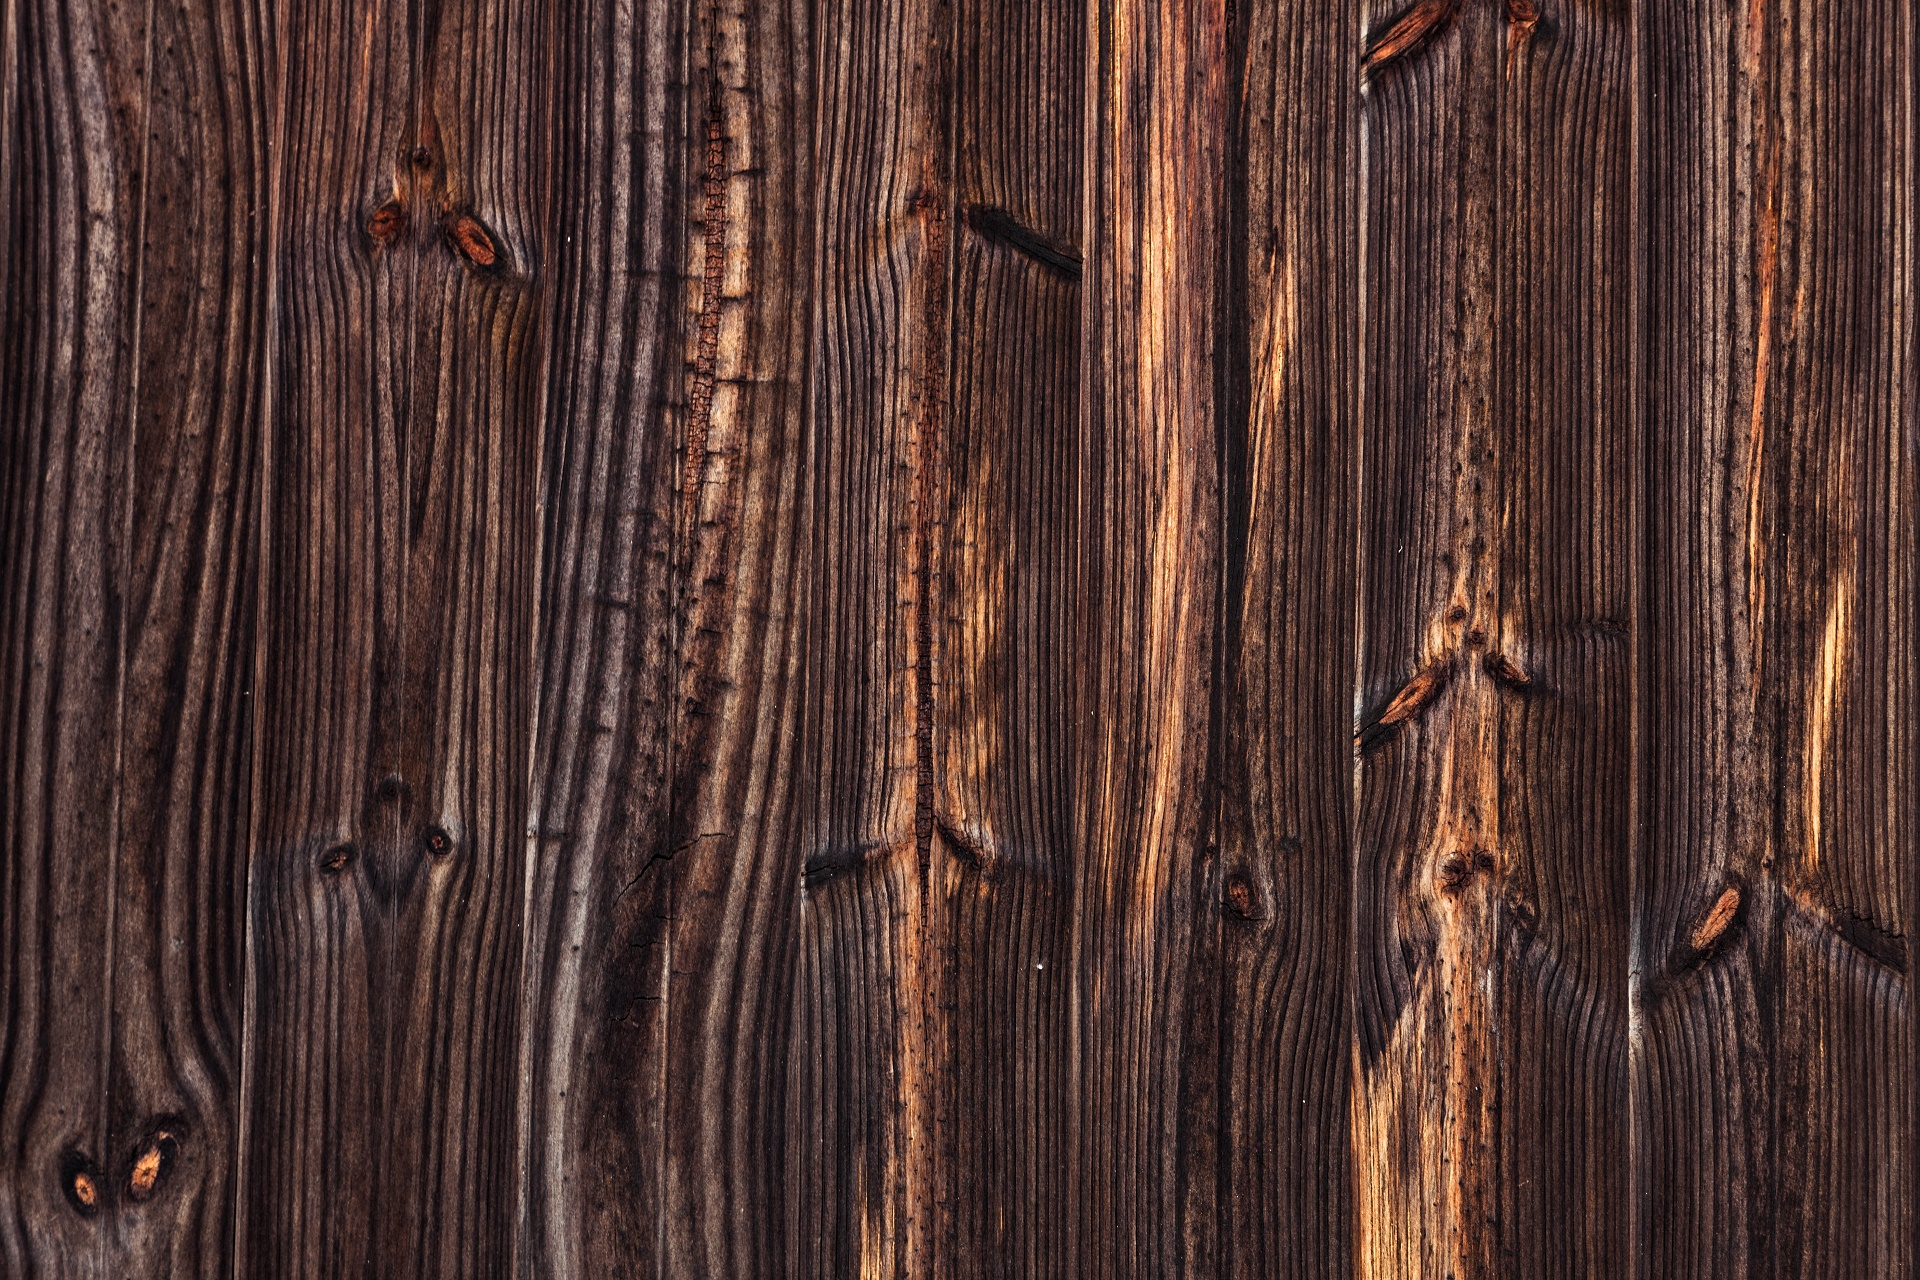 wood pattern hd abstract 4k wallpapers images